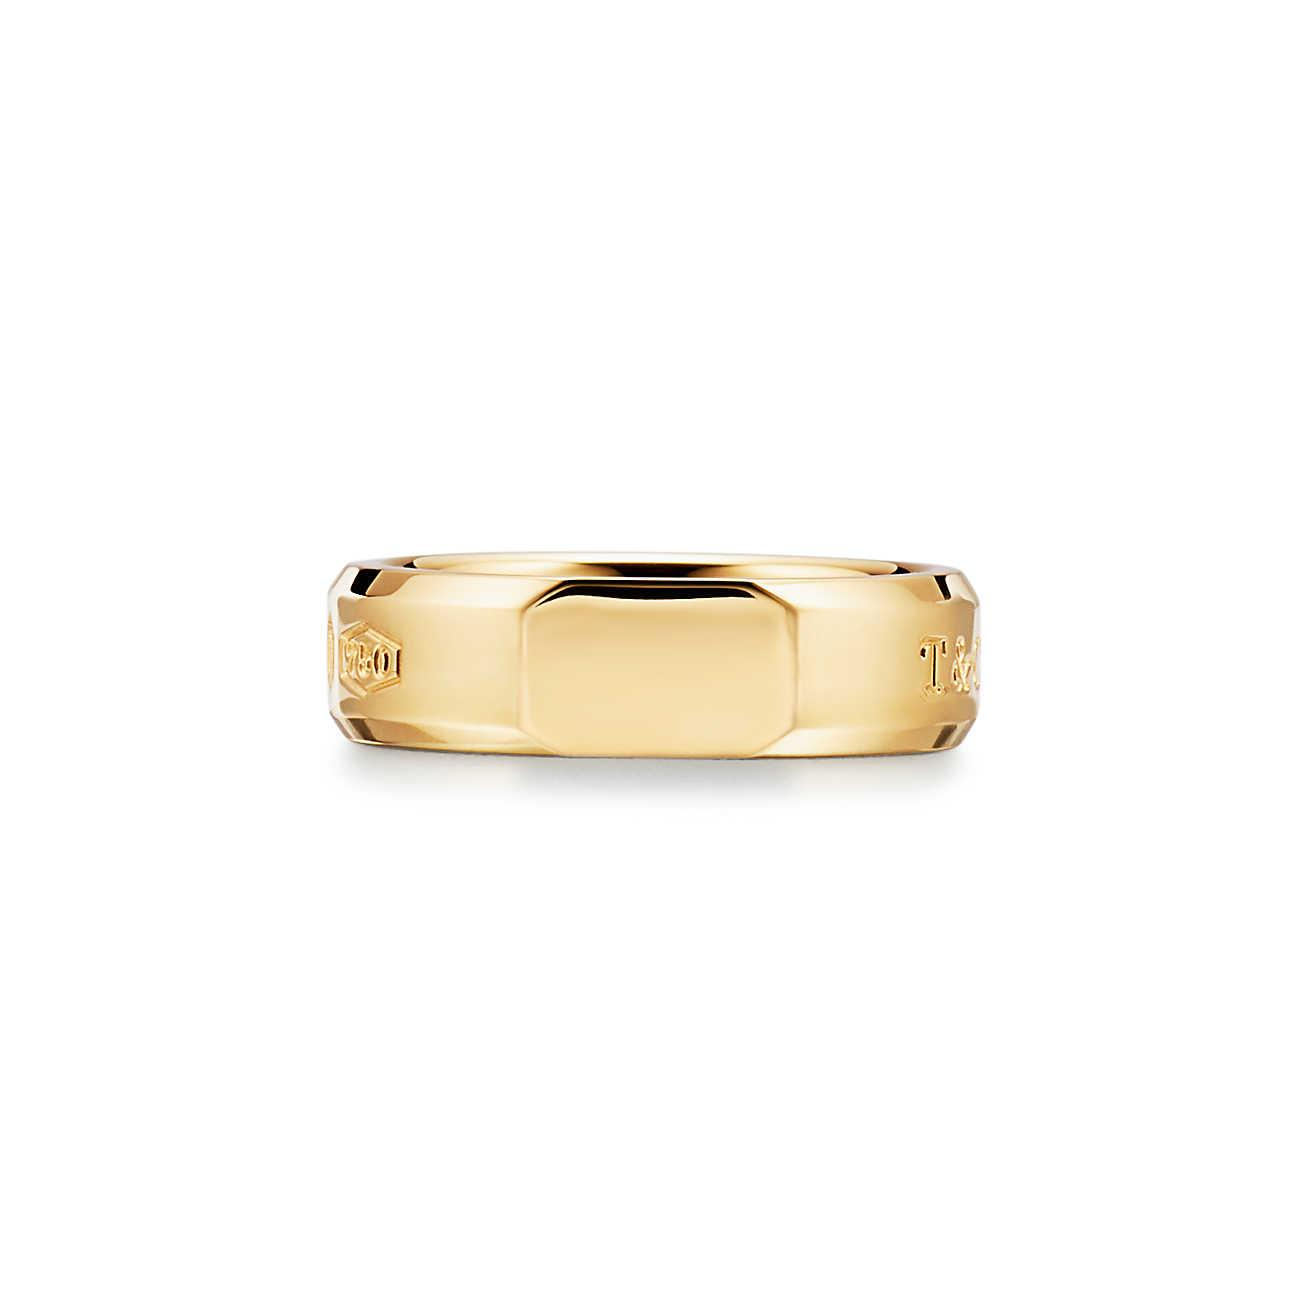 Tiffany 1837® Makers medium slice ring in 18k gold, 6.7 mm wide - Size 6